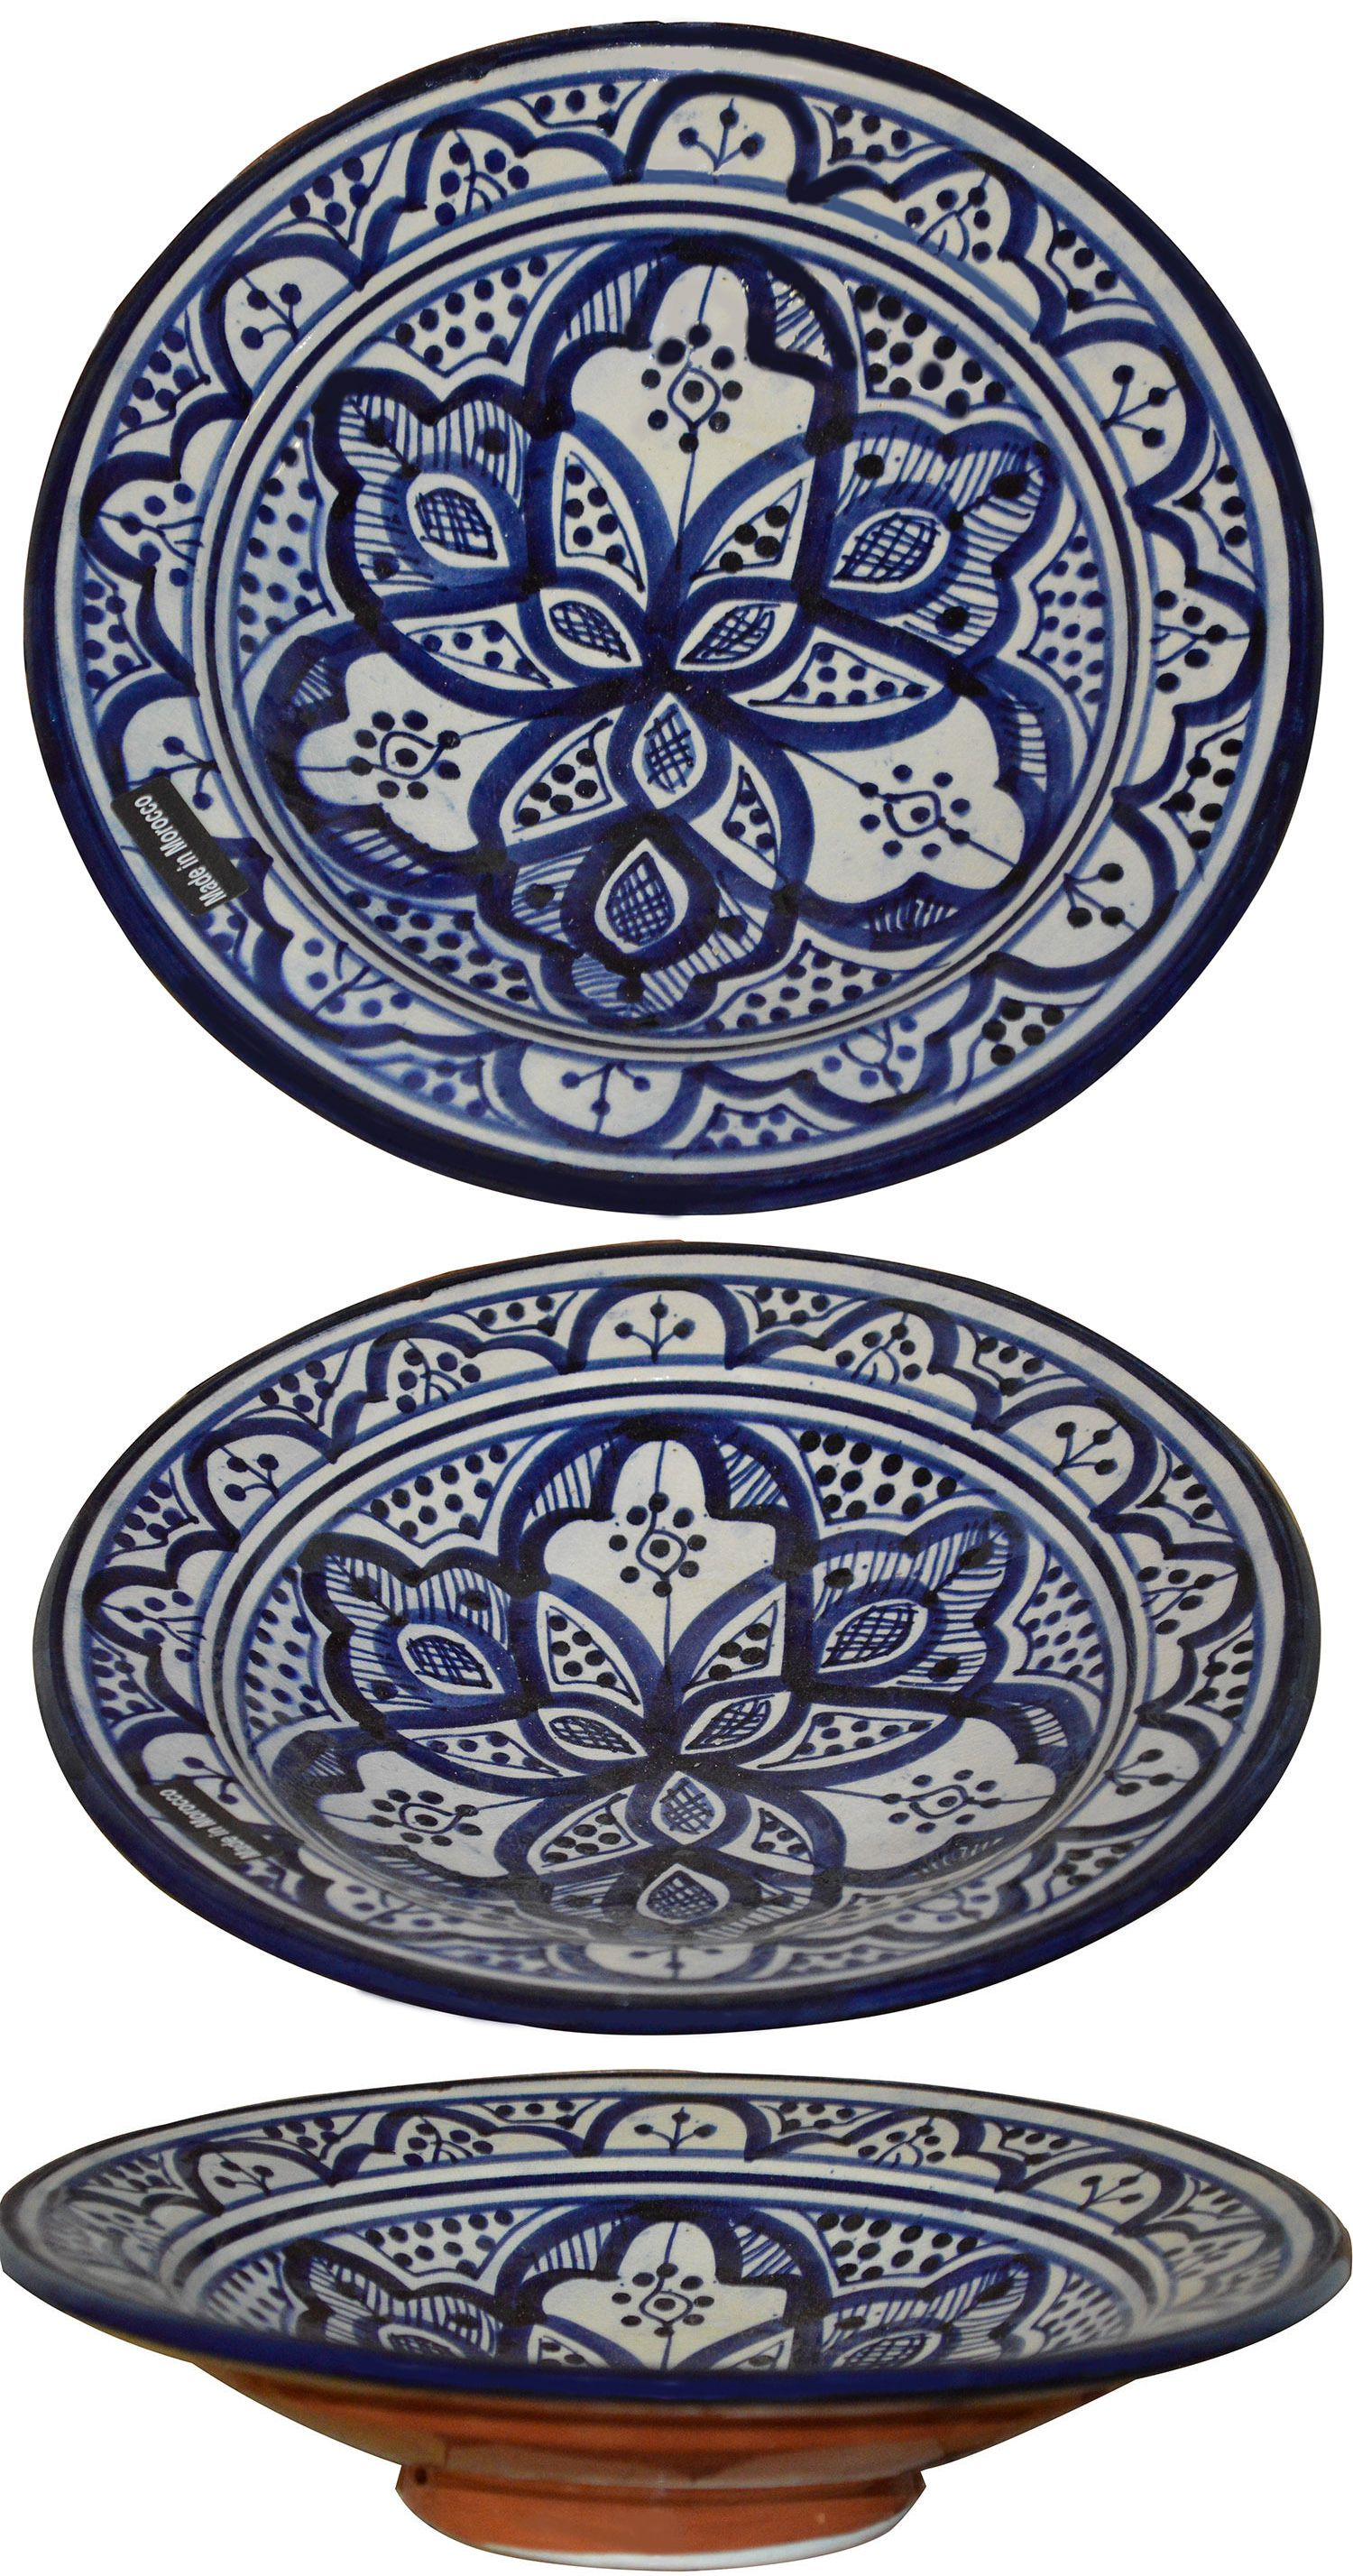 Decorative Plates And Bowls 36019 Moroccan Ceramic Plate